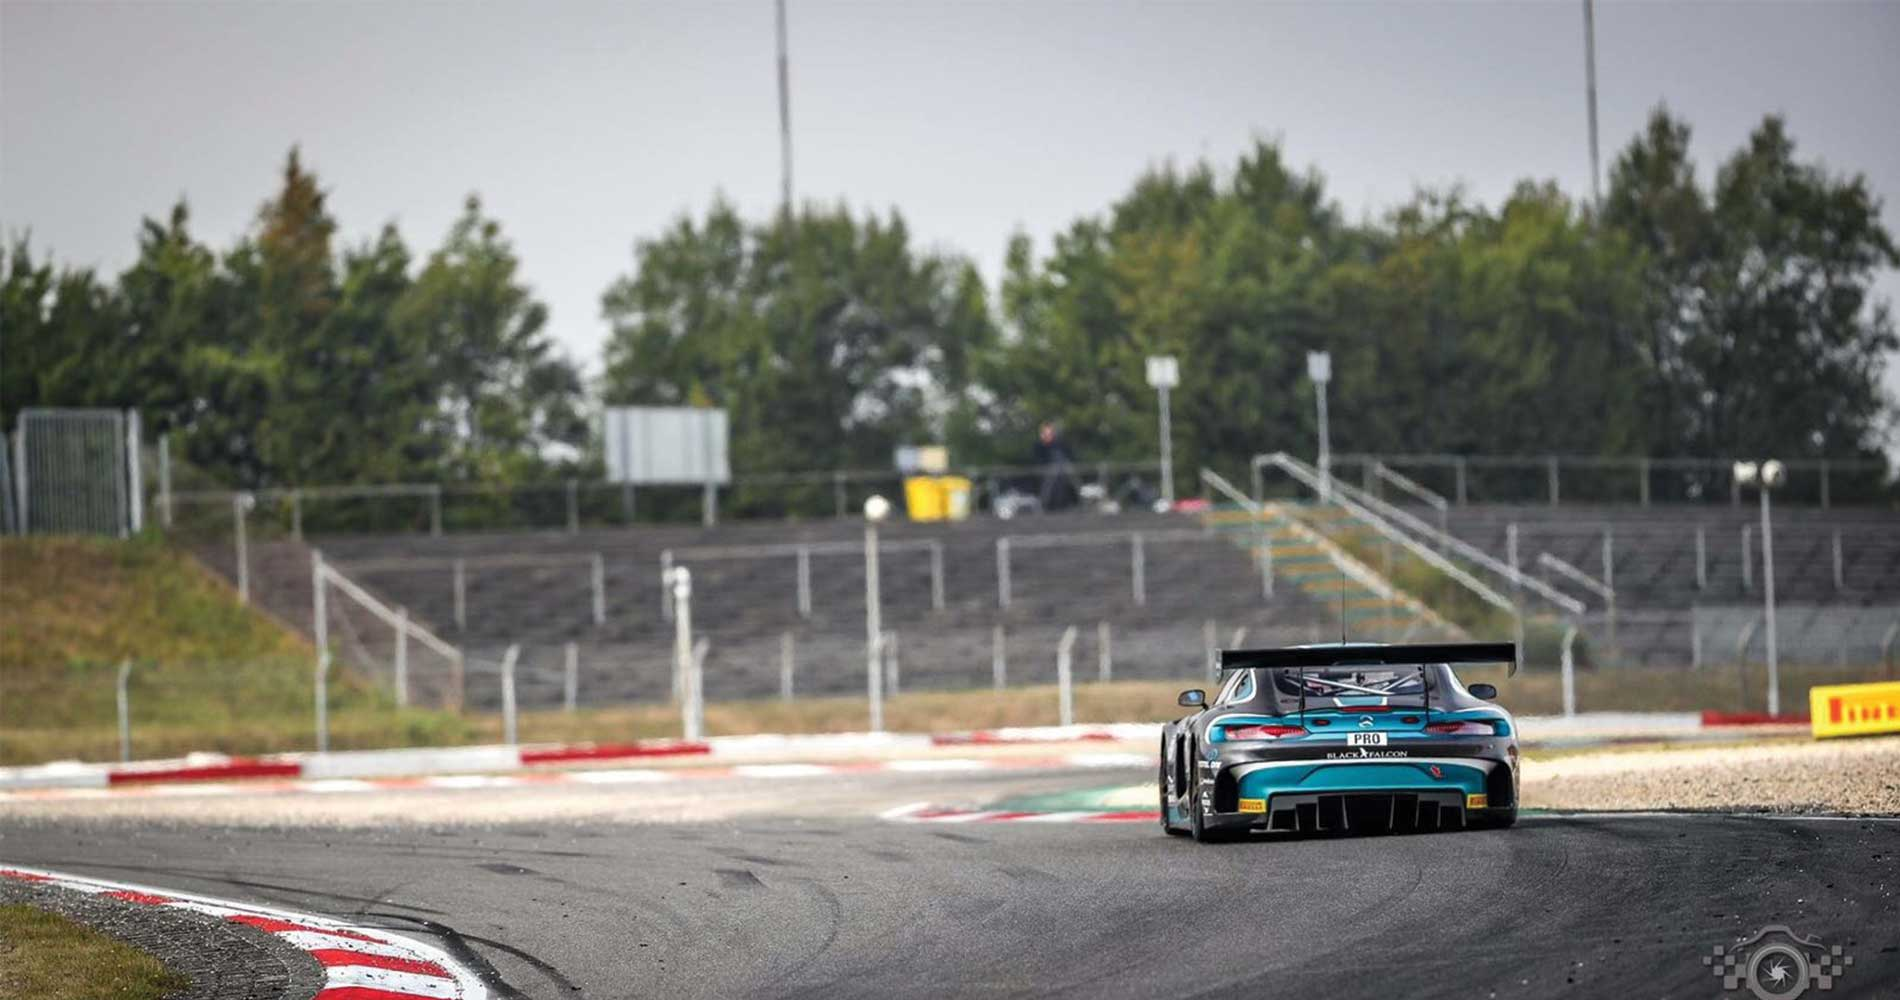 puncture-thwarts-christodoulou-in-blancpain-endurance-finale-motorsportdays-test-days-4